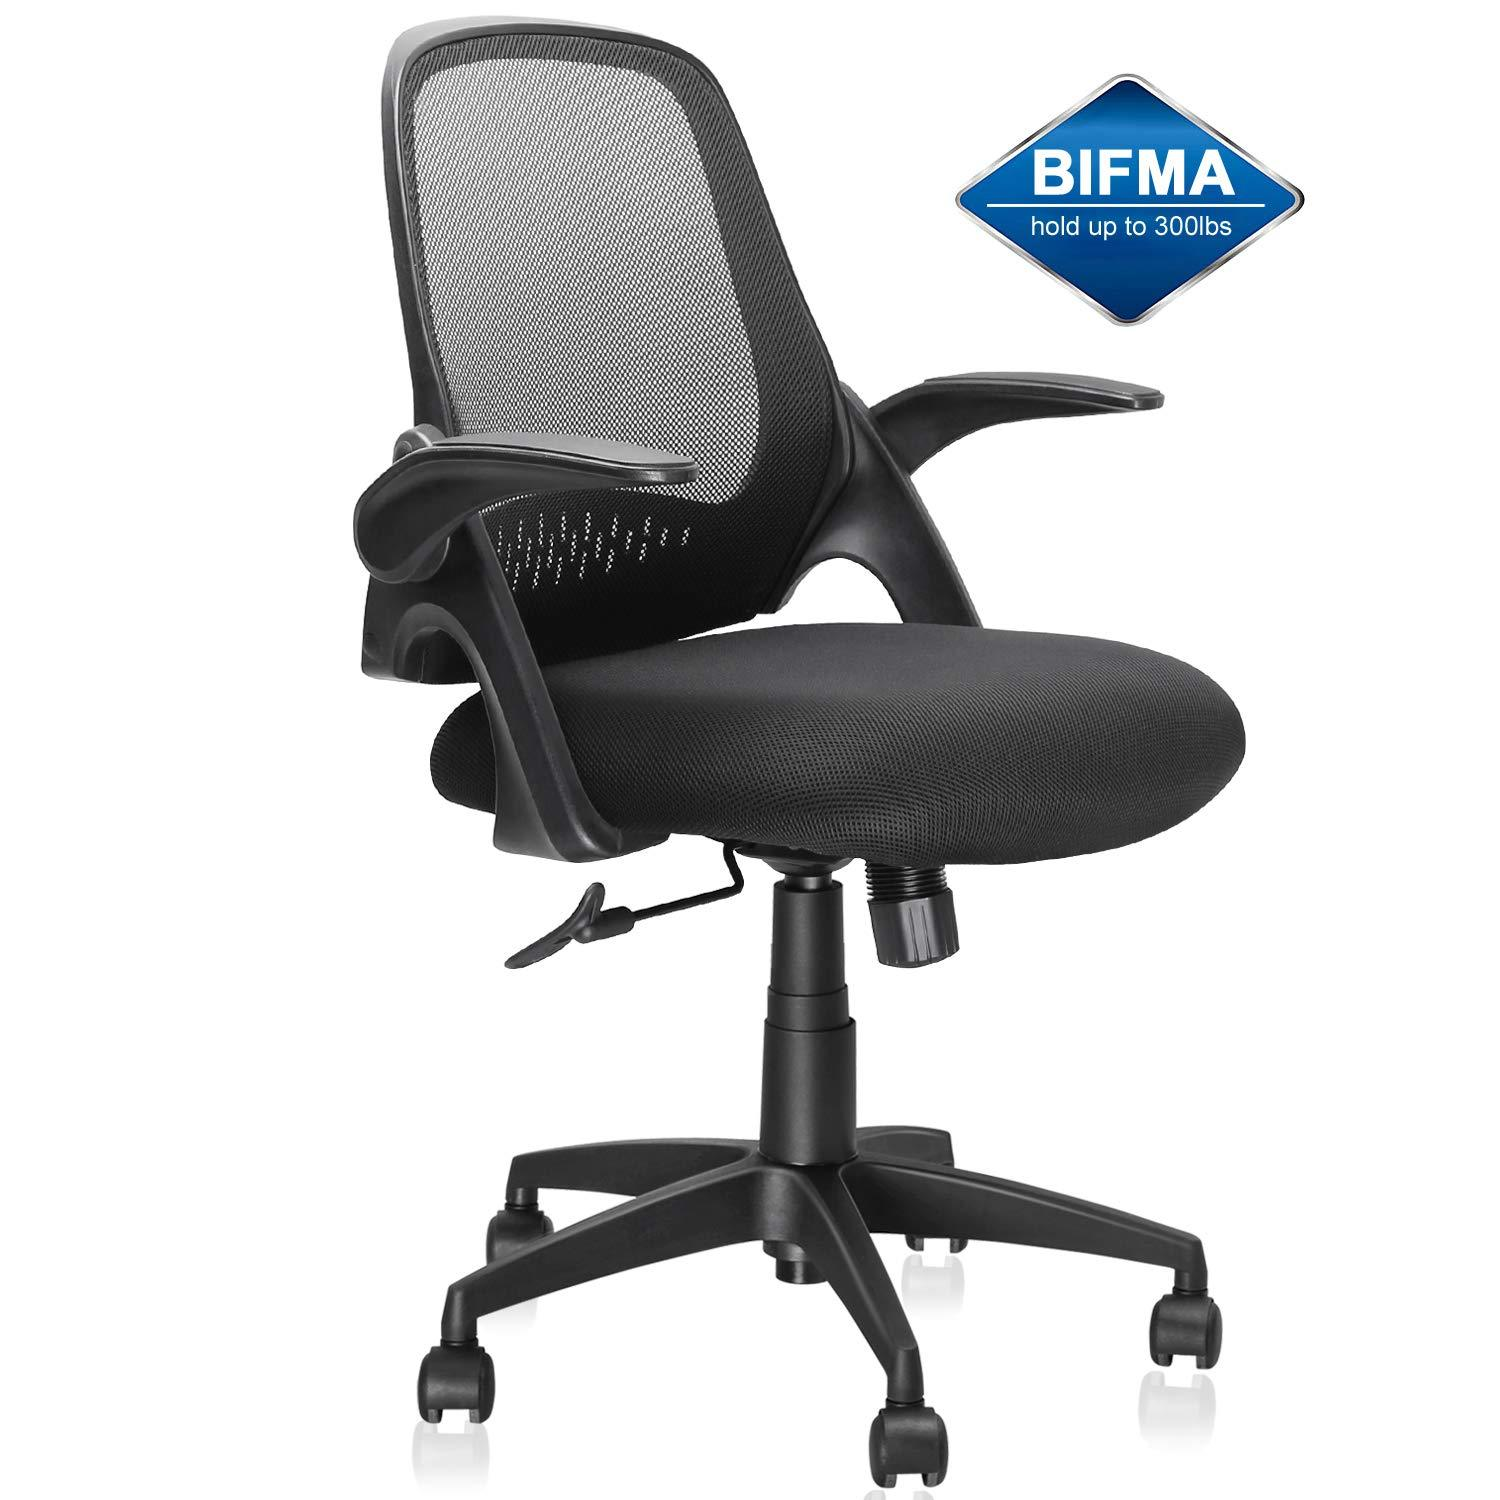 Fantastic Mid Back Mesh Office Chair Ergonomic Desk Chairs Swivel Computer Task Chairs With Adjustable Height And Flip Up Armrest Lumbar Support And Sponge Ibusinesslaw Wood Chair Design Ideas Ibusinesslaworg